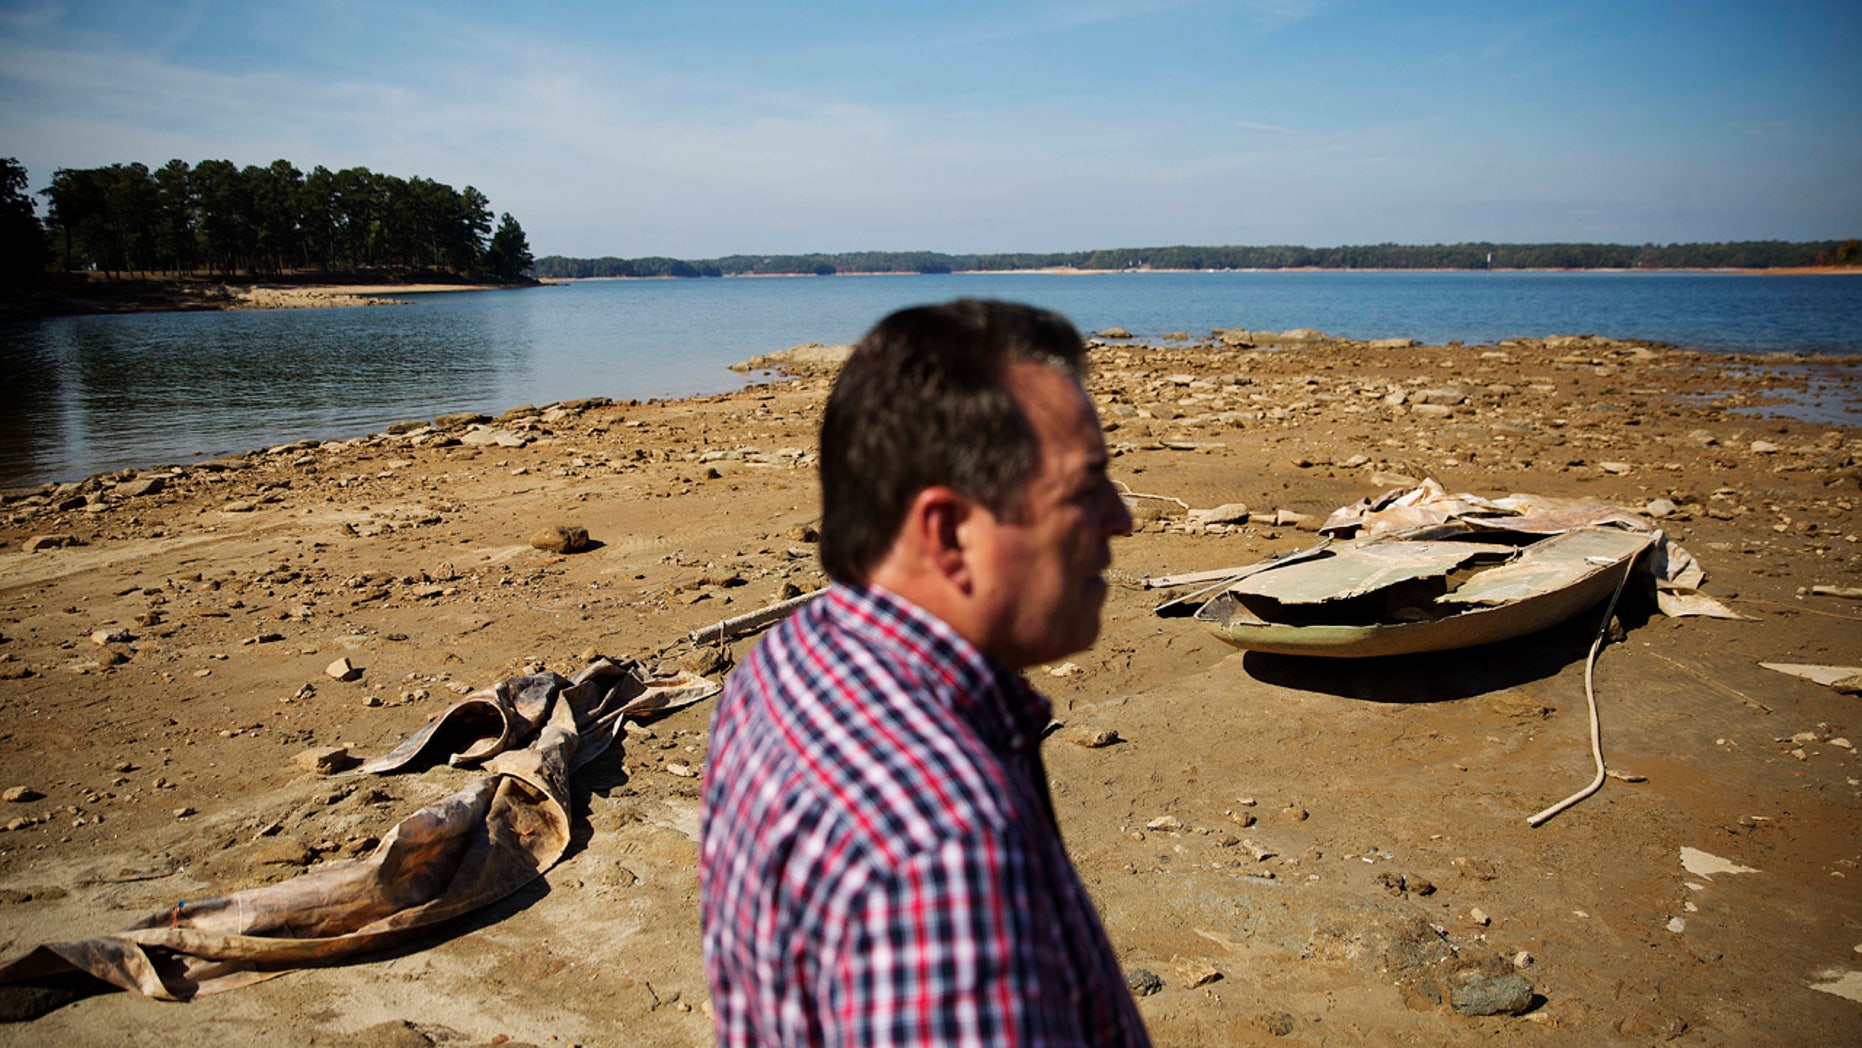 In this Wednesday, Oct. 26, 2016, file photo, a sunken boat is exposed by receding water levels on Lake Lanier as U.S. Army Corps of Engineers Natural Resources Manager Nick Baggett looks on in Flowery Branch, Ga.